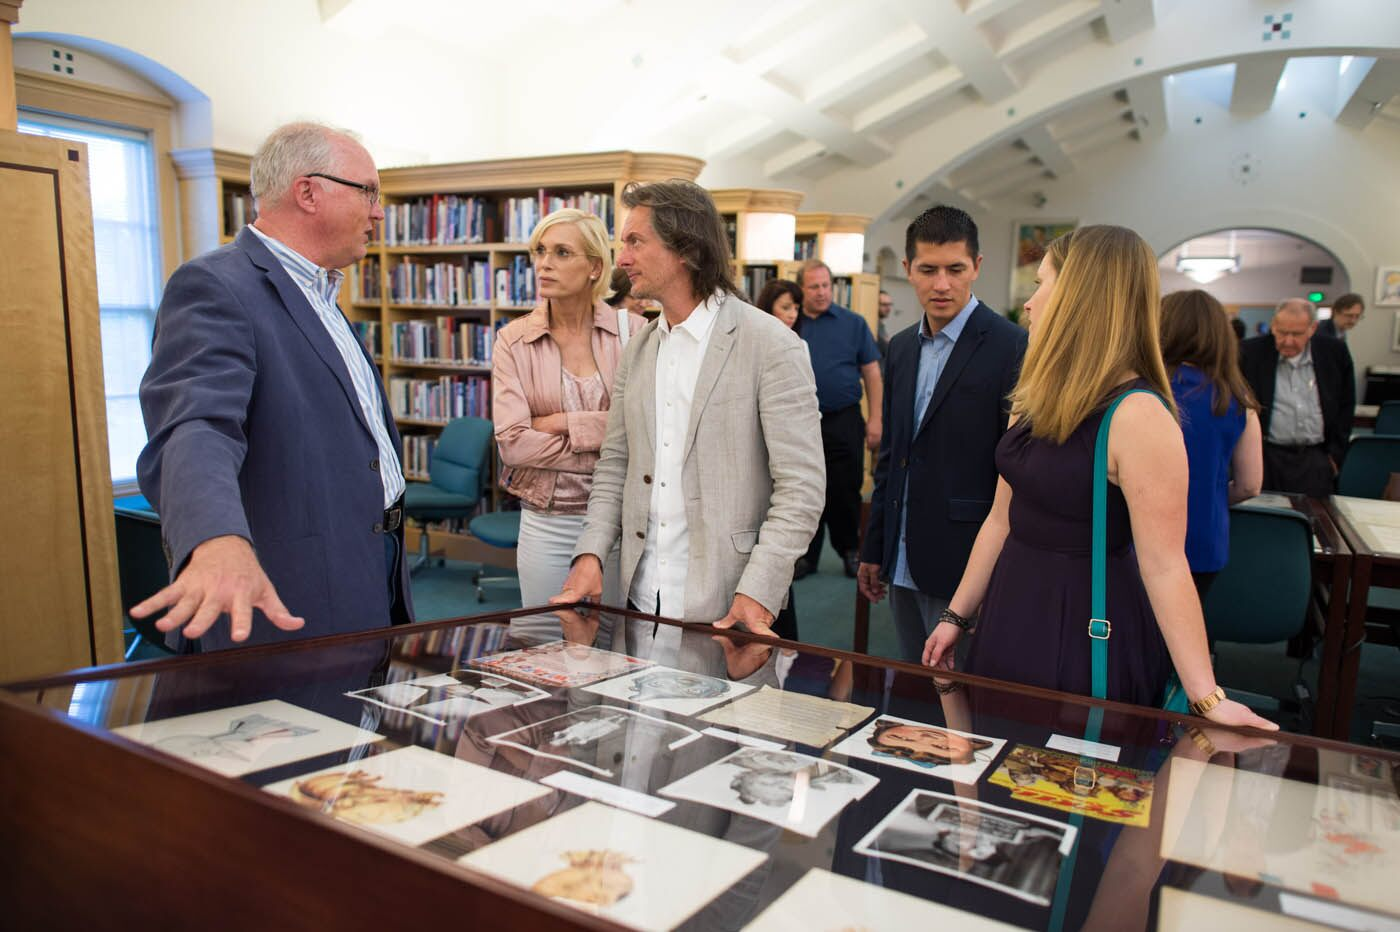 Academy Museum Founding Supporters and Friends Reception, July 22, 2015